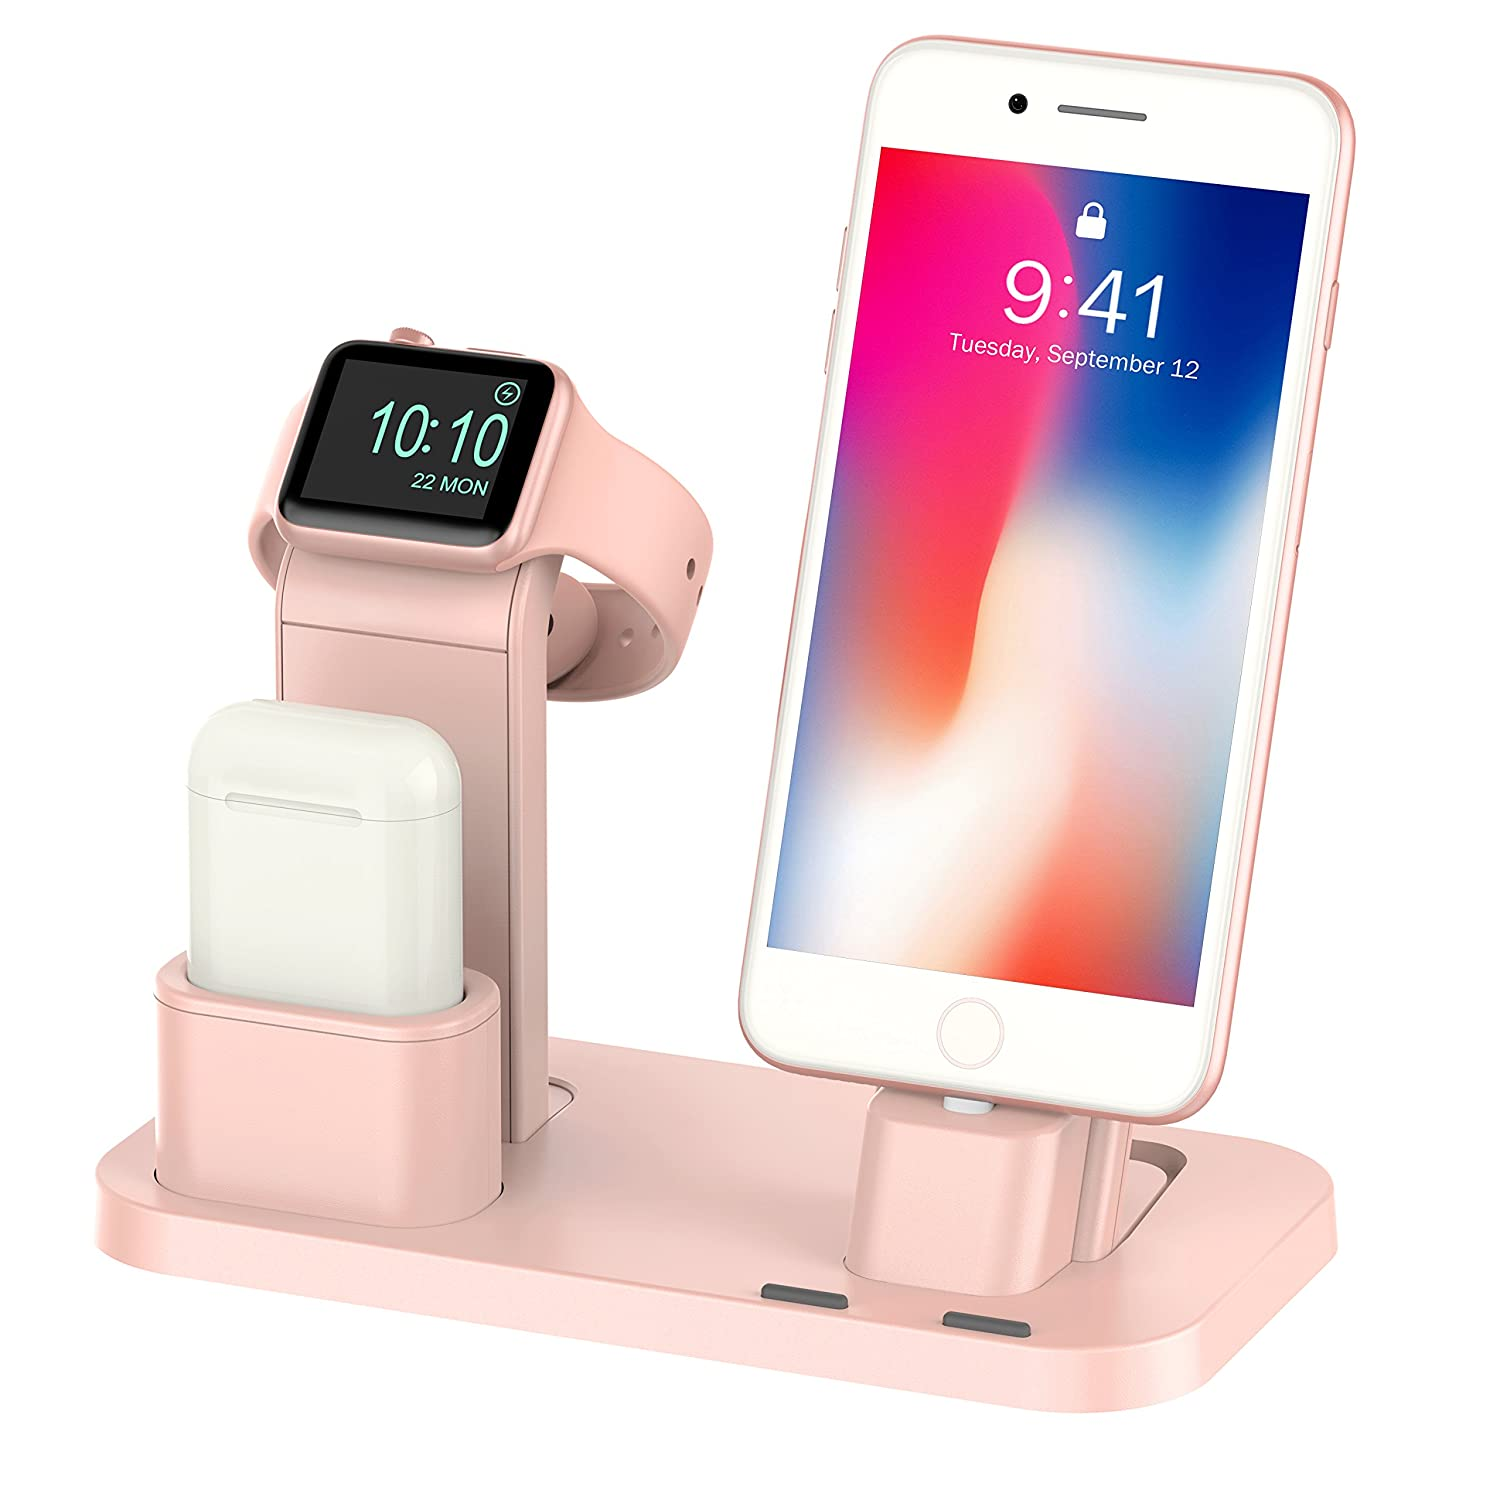 BEACOO Stand for iwatch, Charging Stand Dock Station for AirPods Stand Charging Docks Holder, Support for iwatch NightStand Mode and for iPhone ...